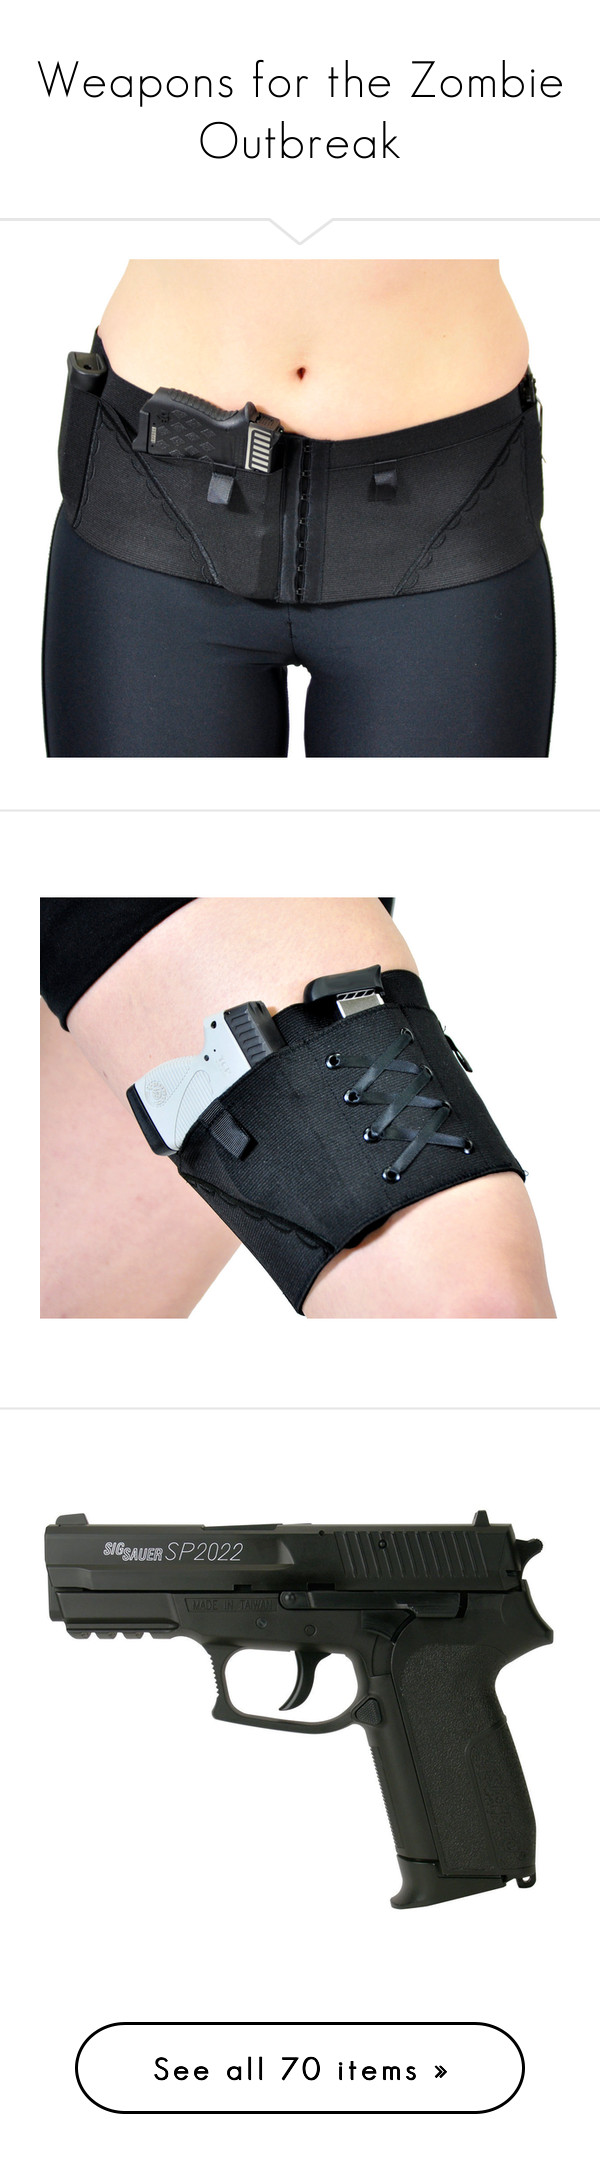 """""""Weapons for the Zombie Outbreak"""" by supercait12 on Polyvore featuring intimates, props, weapons, grey, women's clothing, black slip, military fashion, accessories, garter belt and garter slip"""